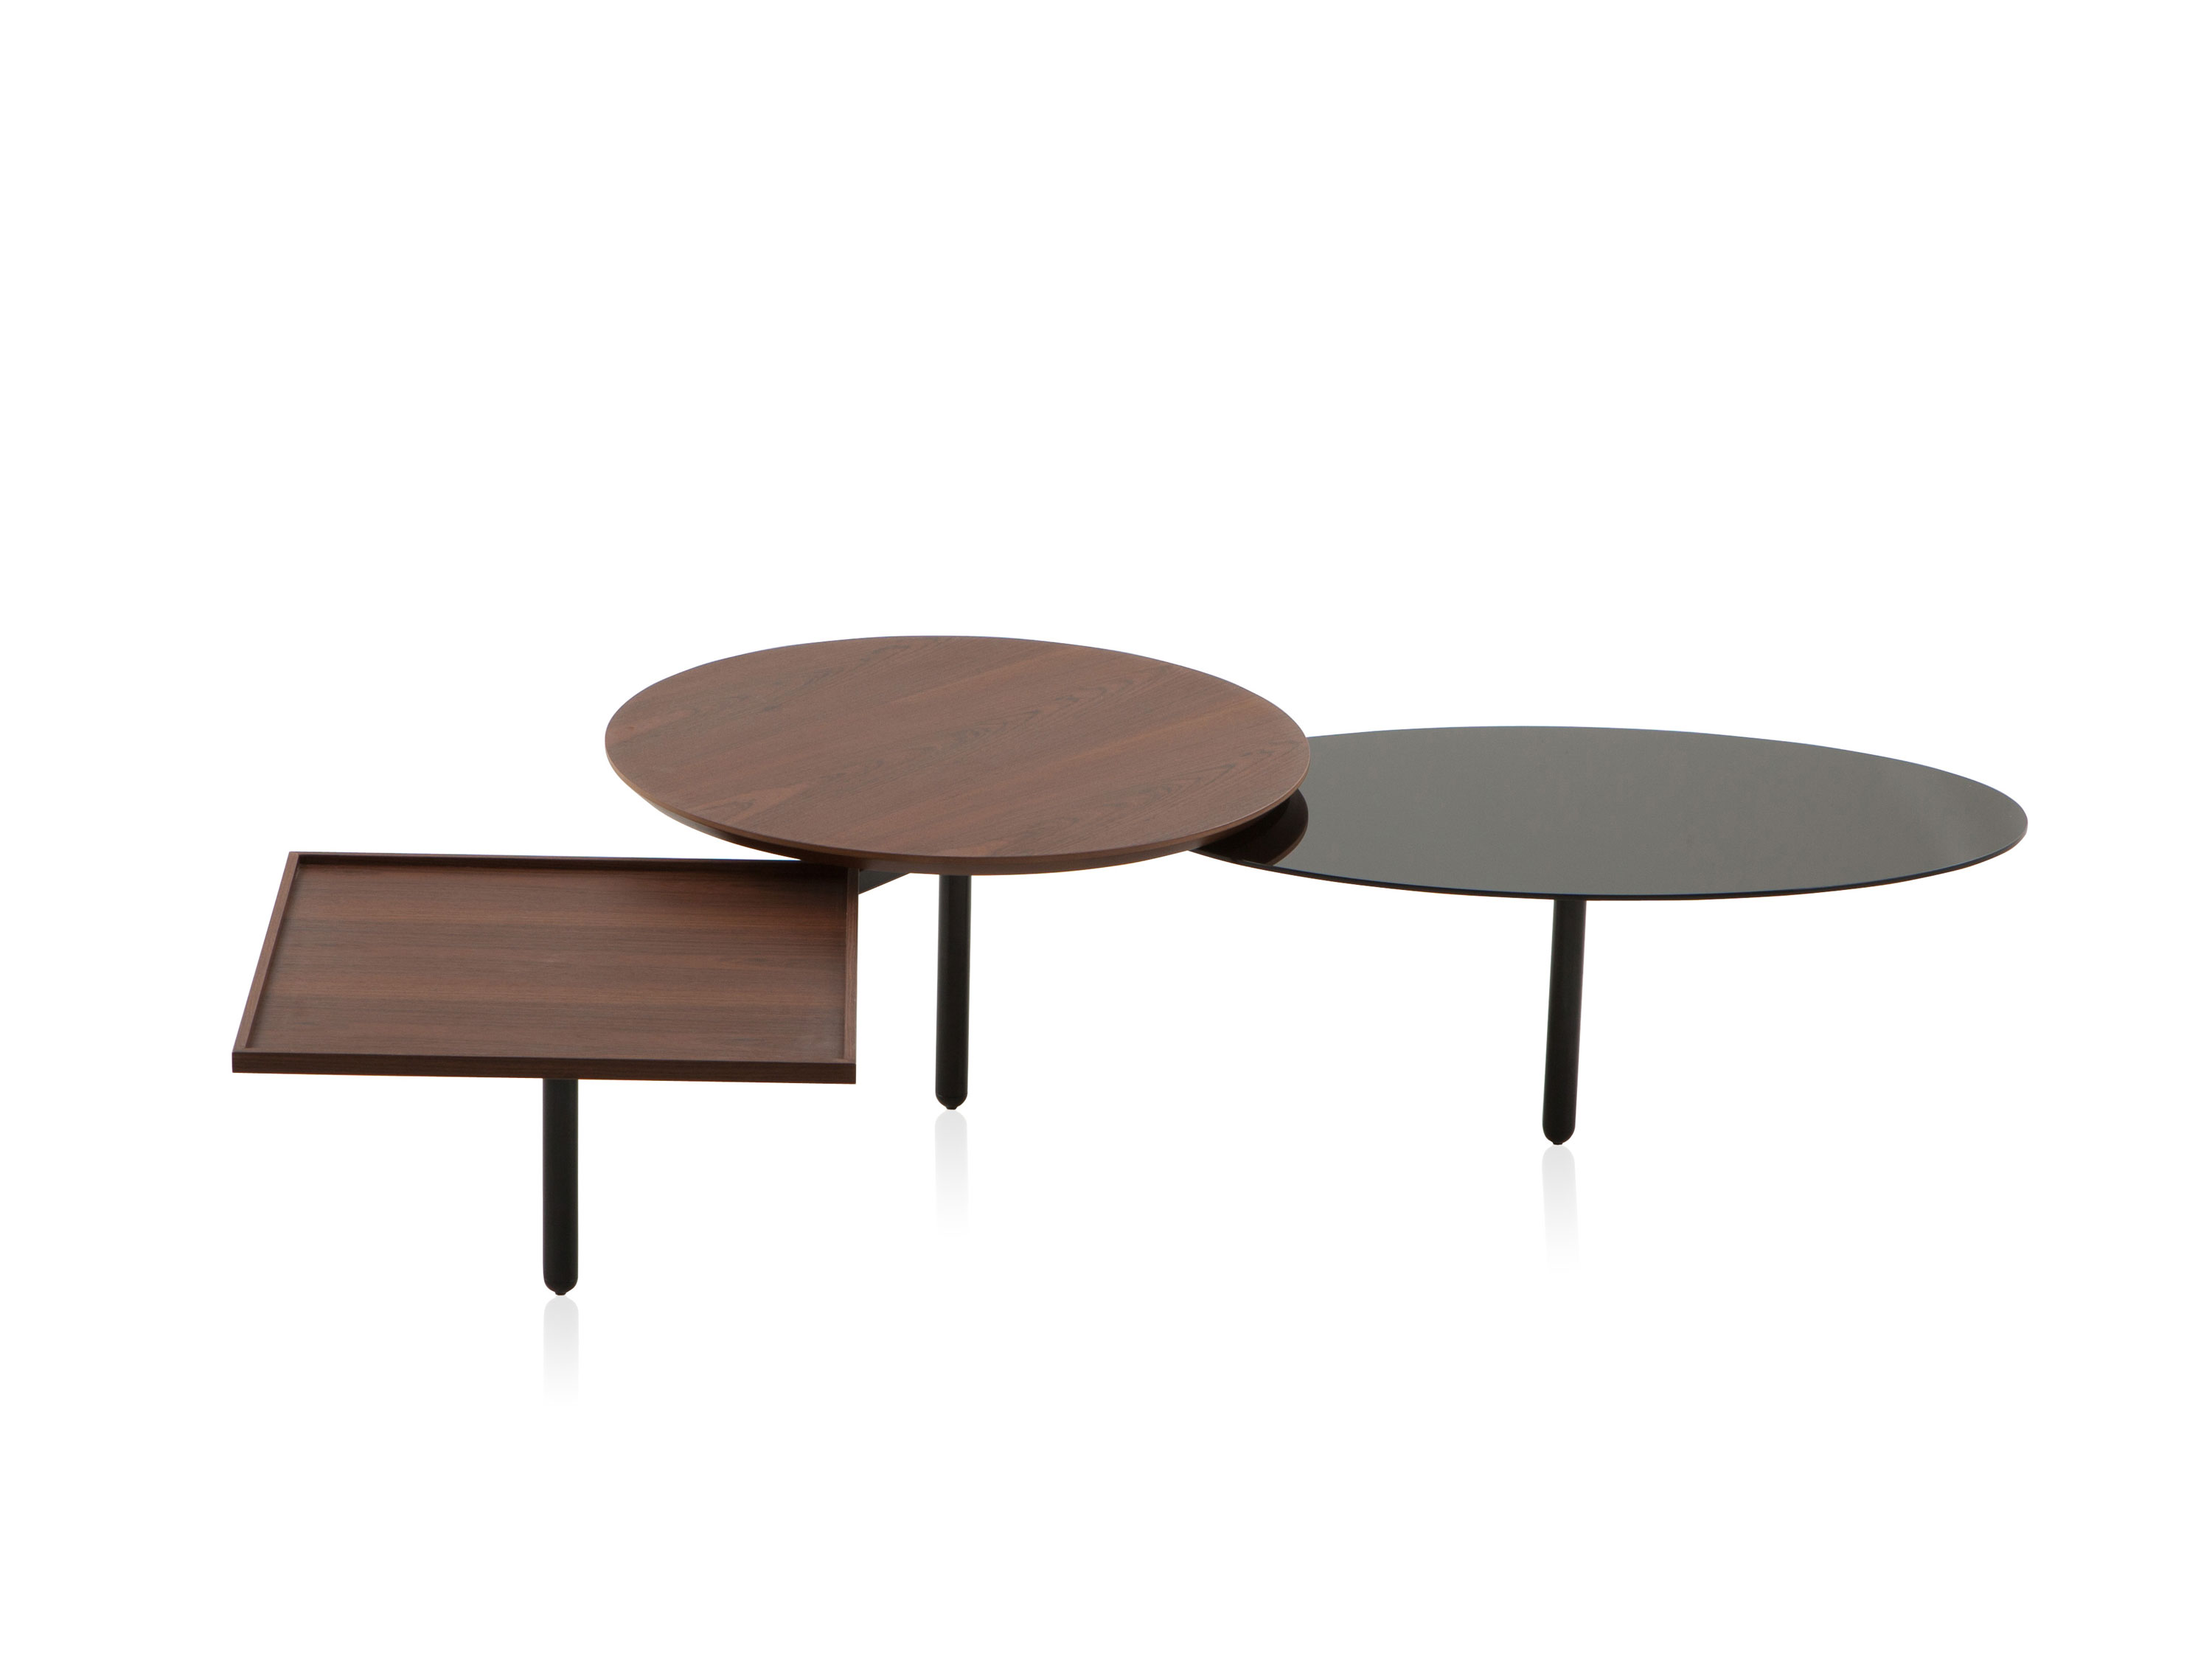 Porro, image:prodotti - Porro Spa - 3Table